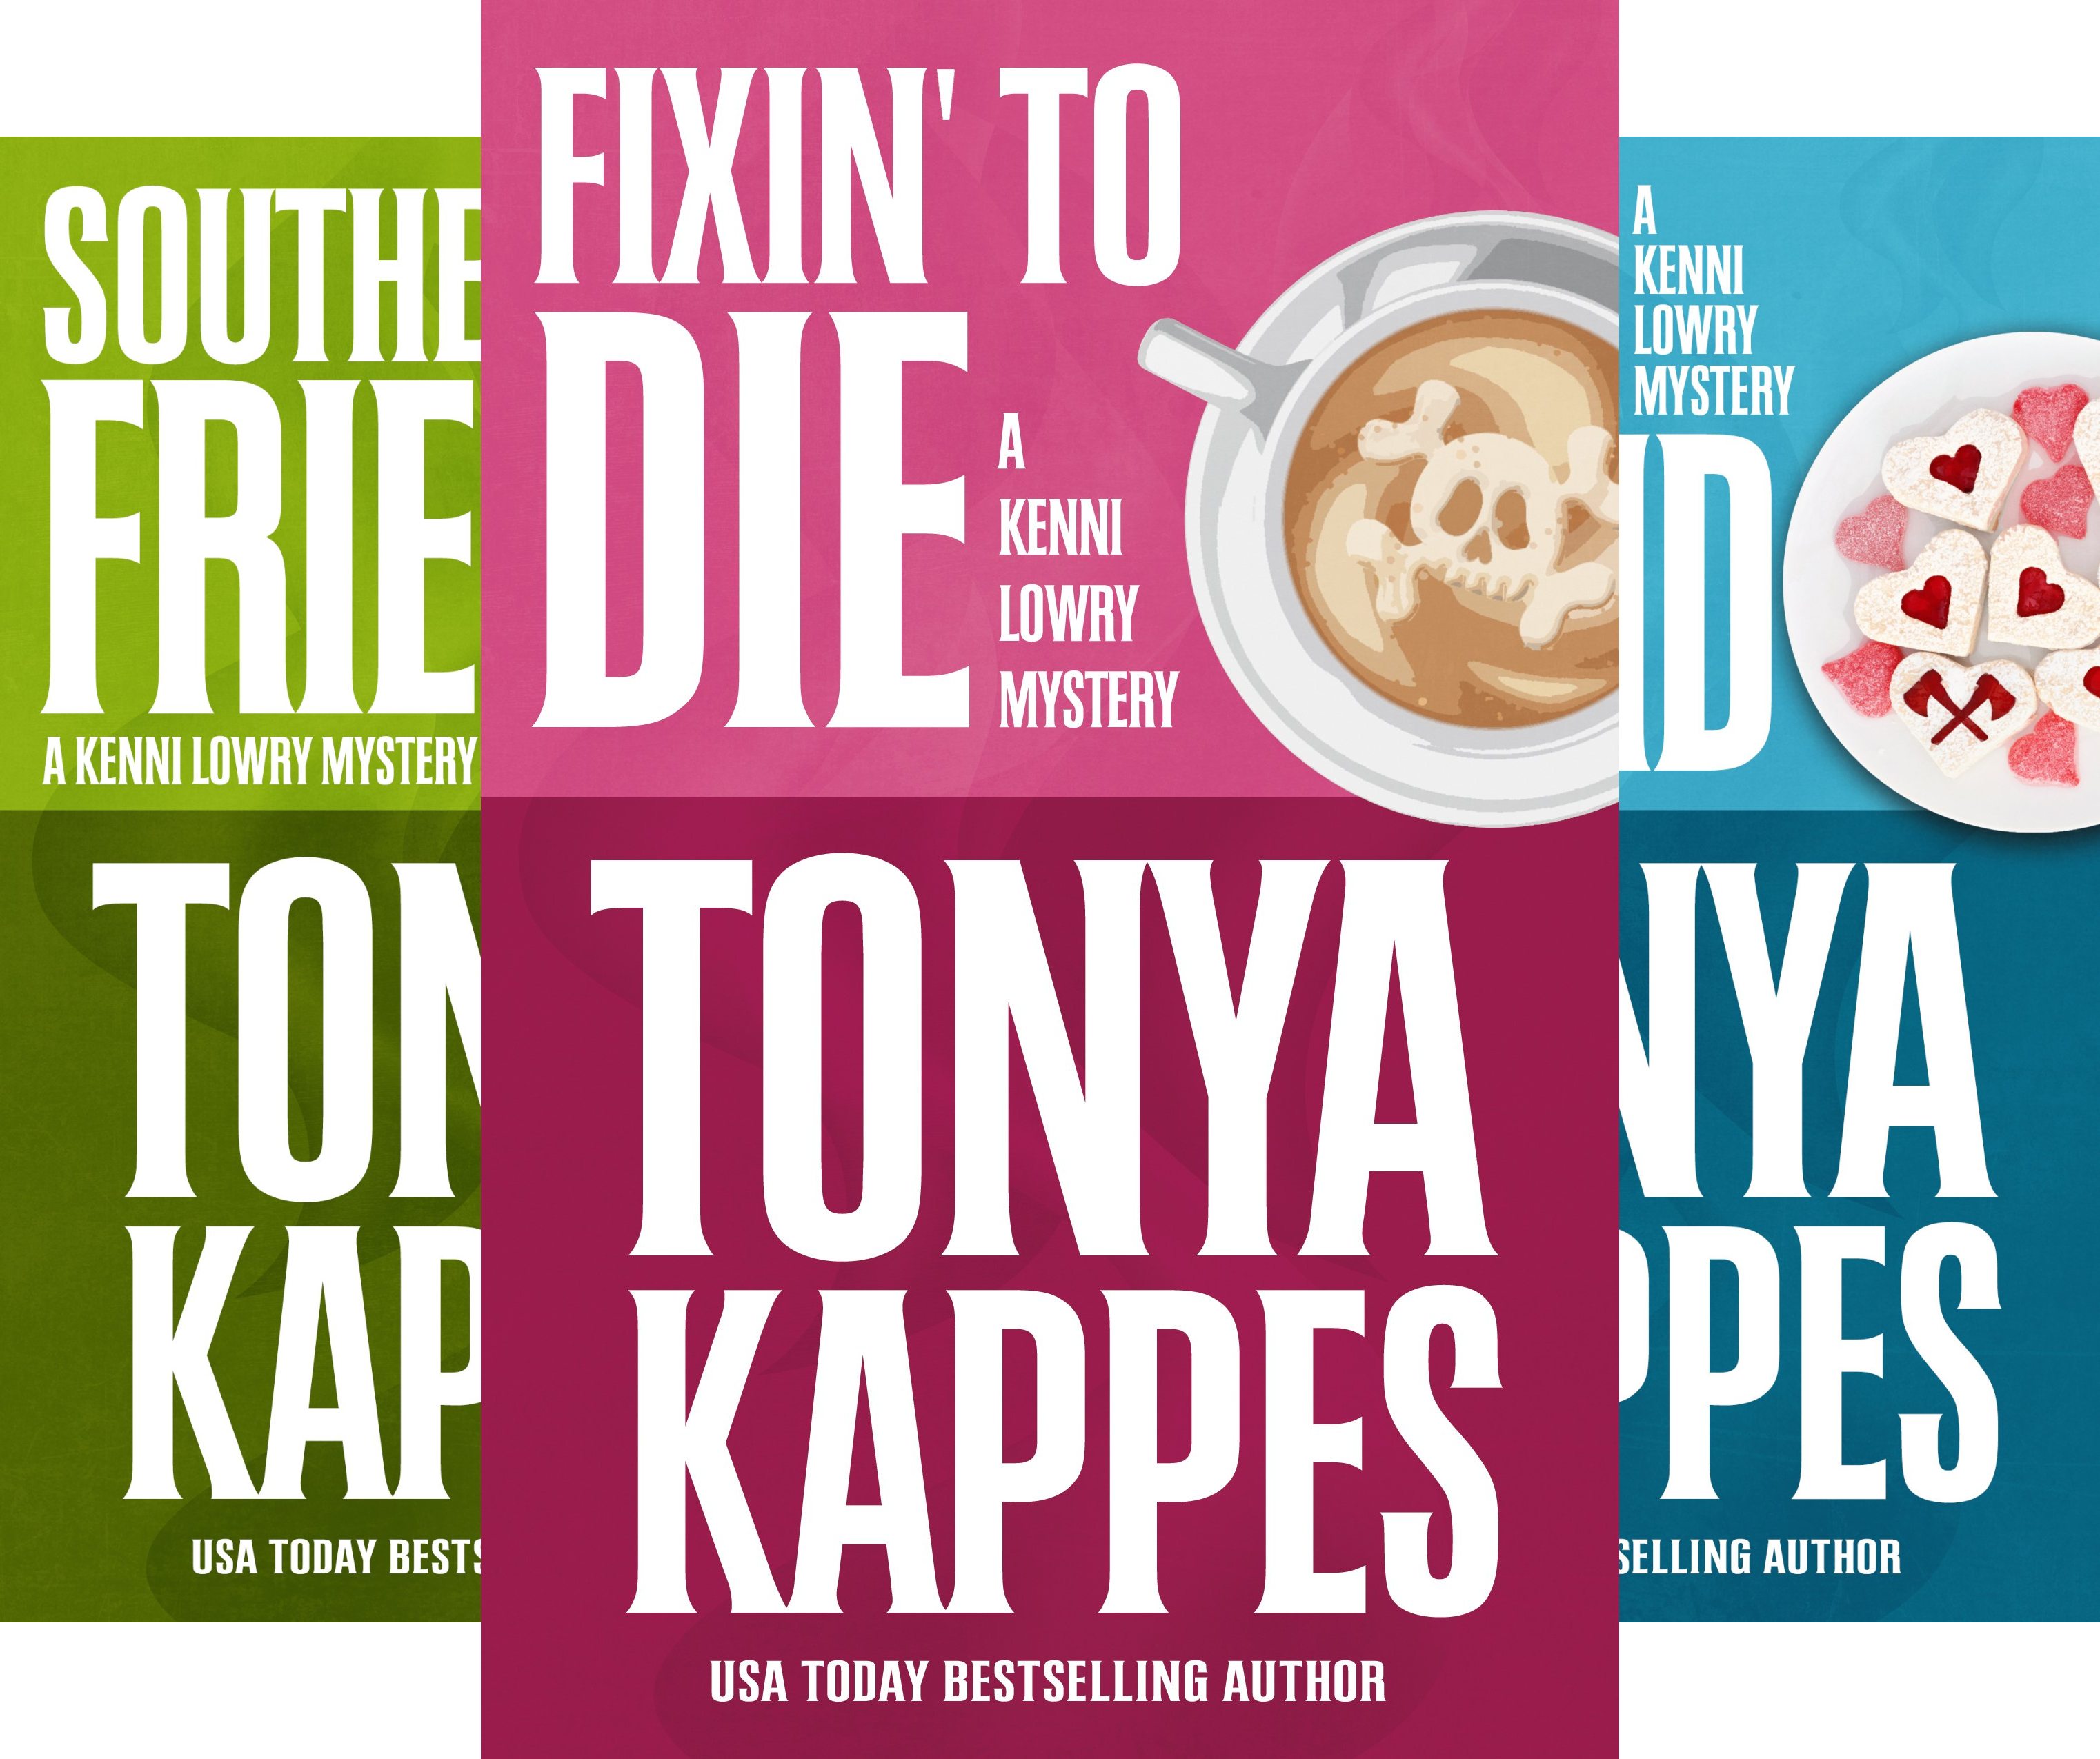 A Kenni Lowry Mystery (3 Book Series)